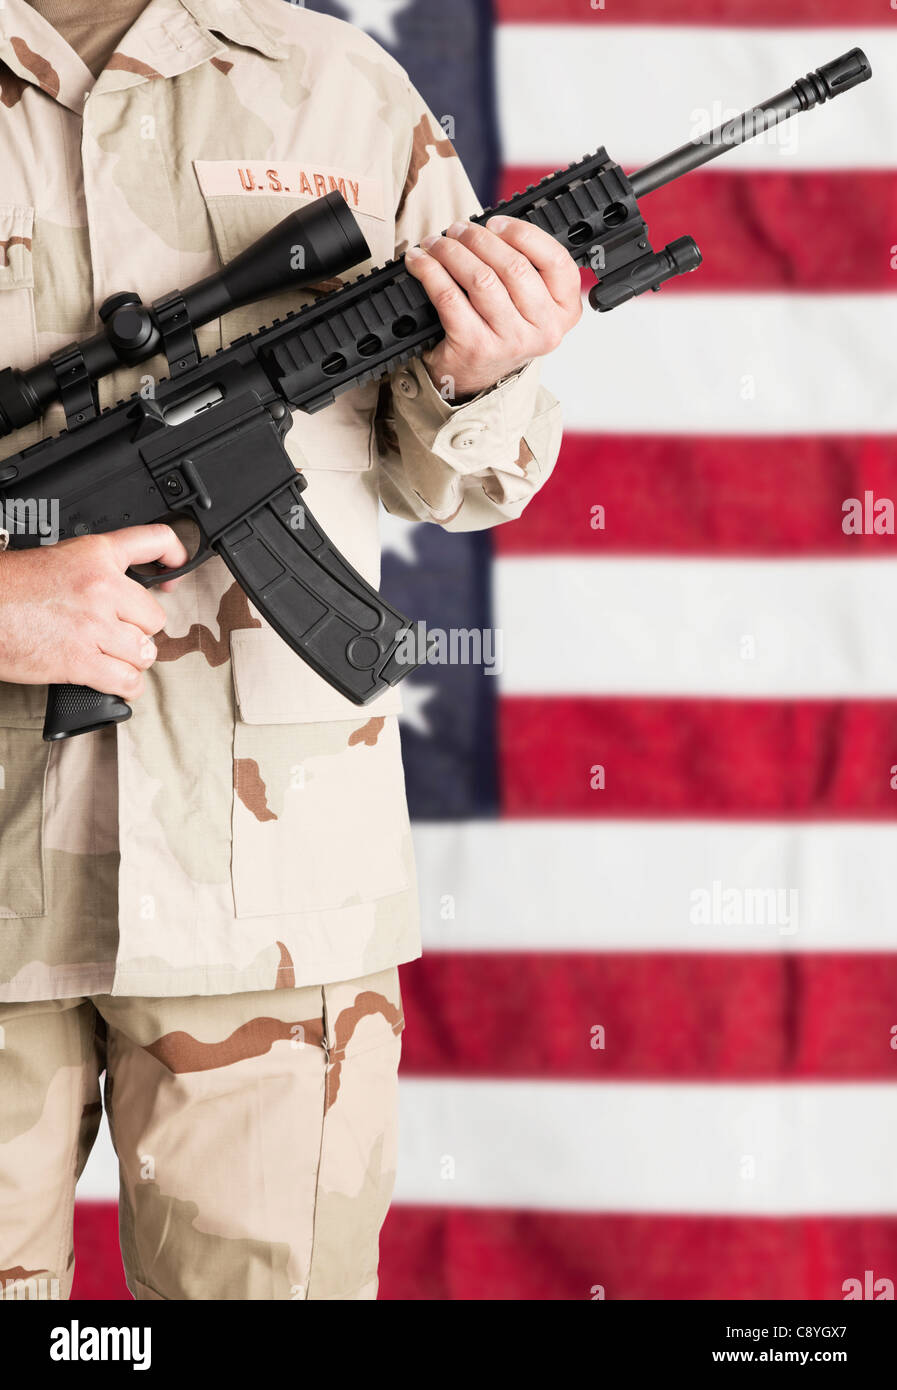 Studio shot of soldier with machine gun standing against American, mid section - Stock Image